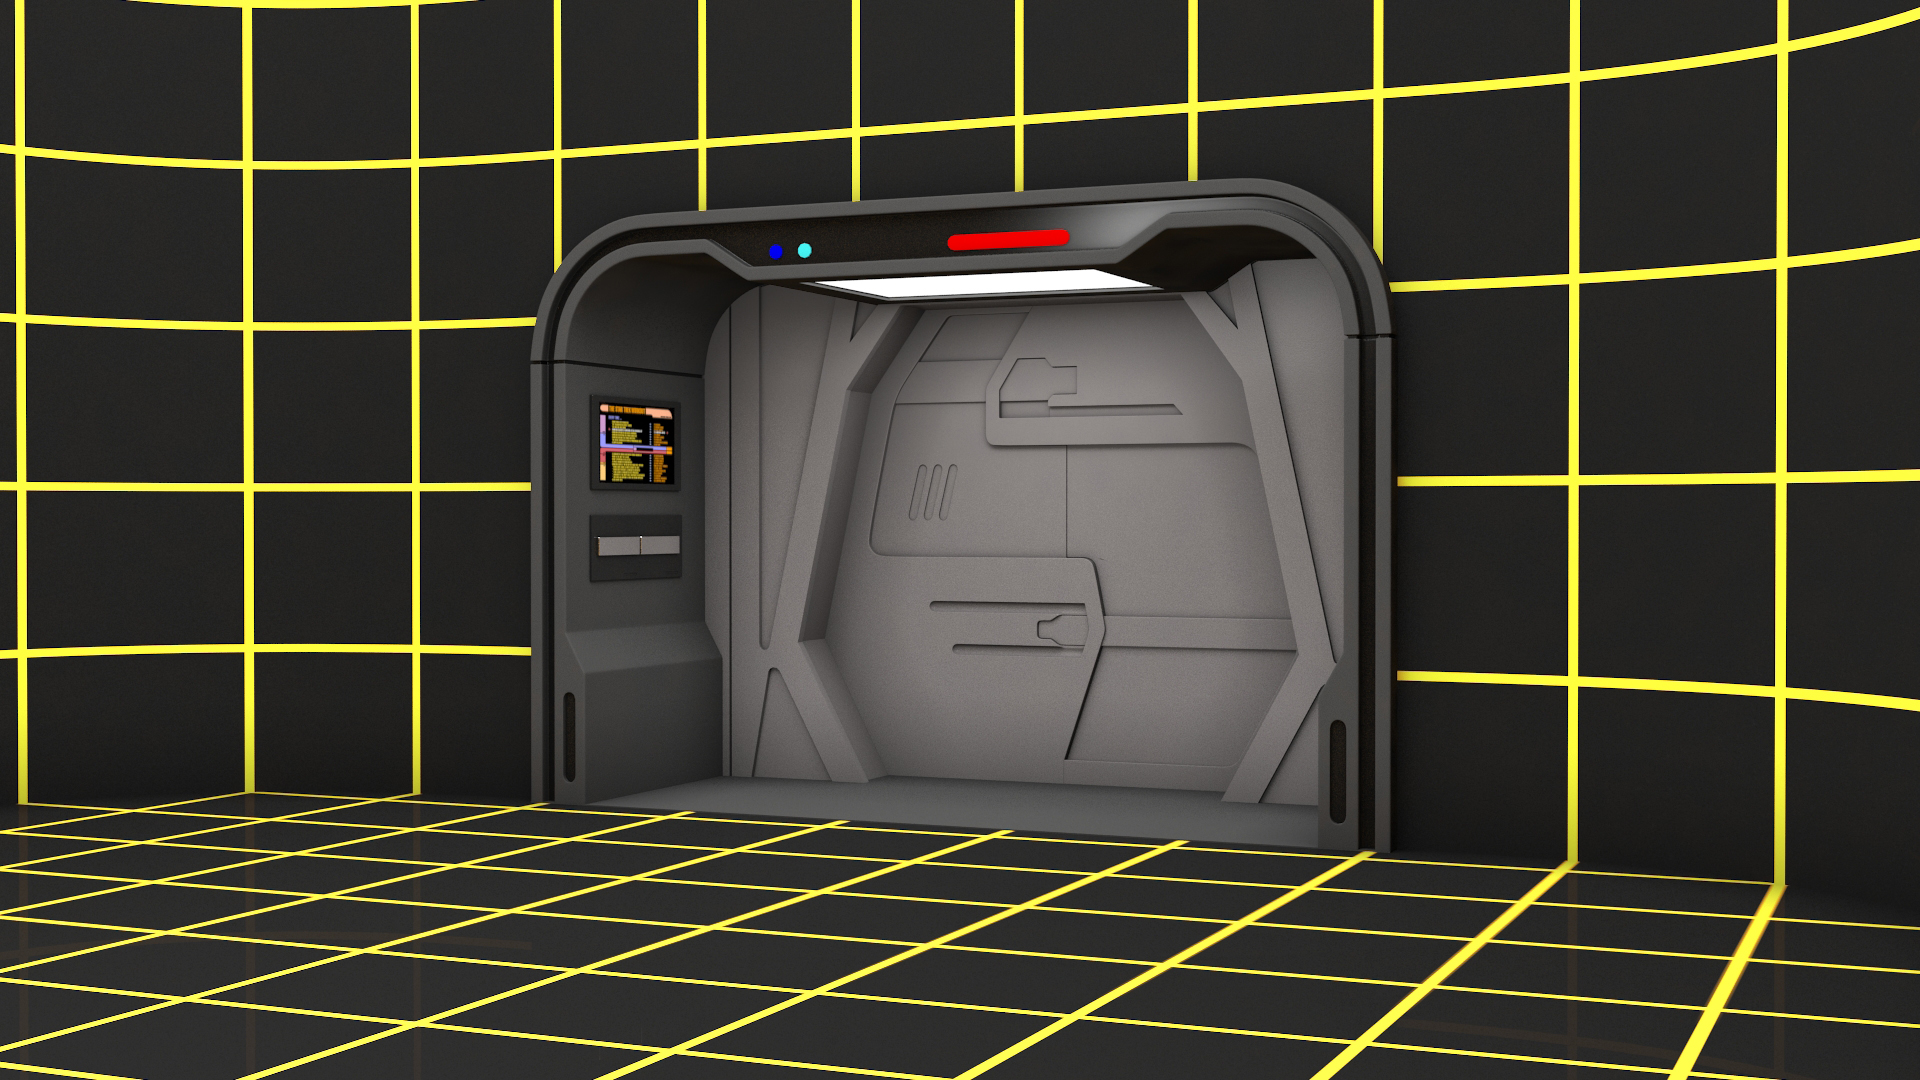 3d Model Of Star Trek Holodeck By Alexei Sviridov 3docean